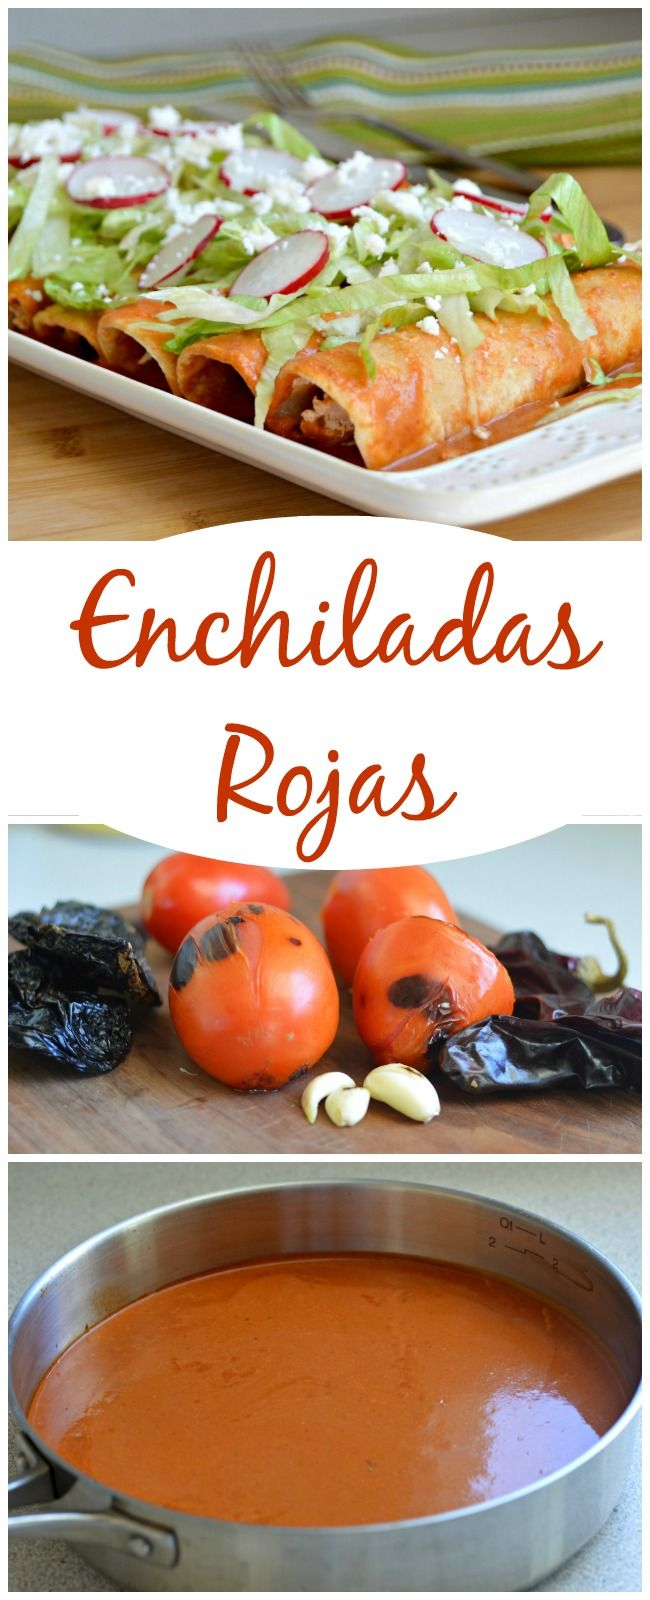 These Enchiladas Rojas are delicious - the sauce is a bit creamy and tastes amazing.